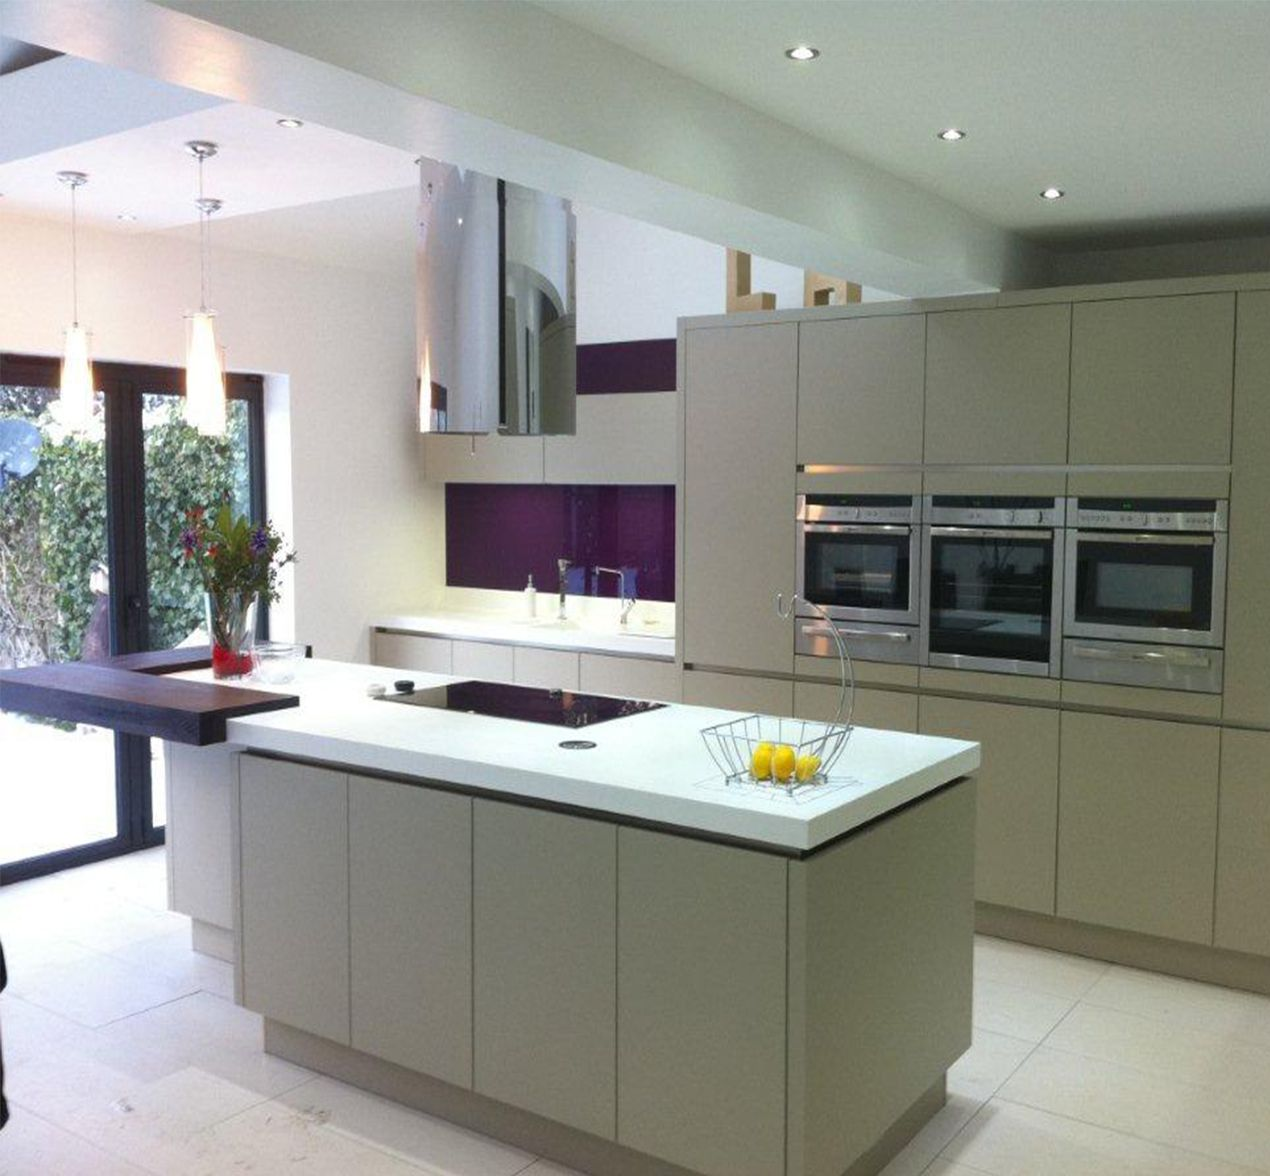 Kitchen Design Centre Hollinwood Luxury Modern Kitchen Customer Kitchens Kitchen Design